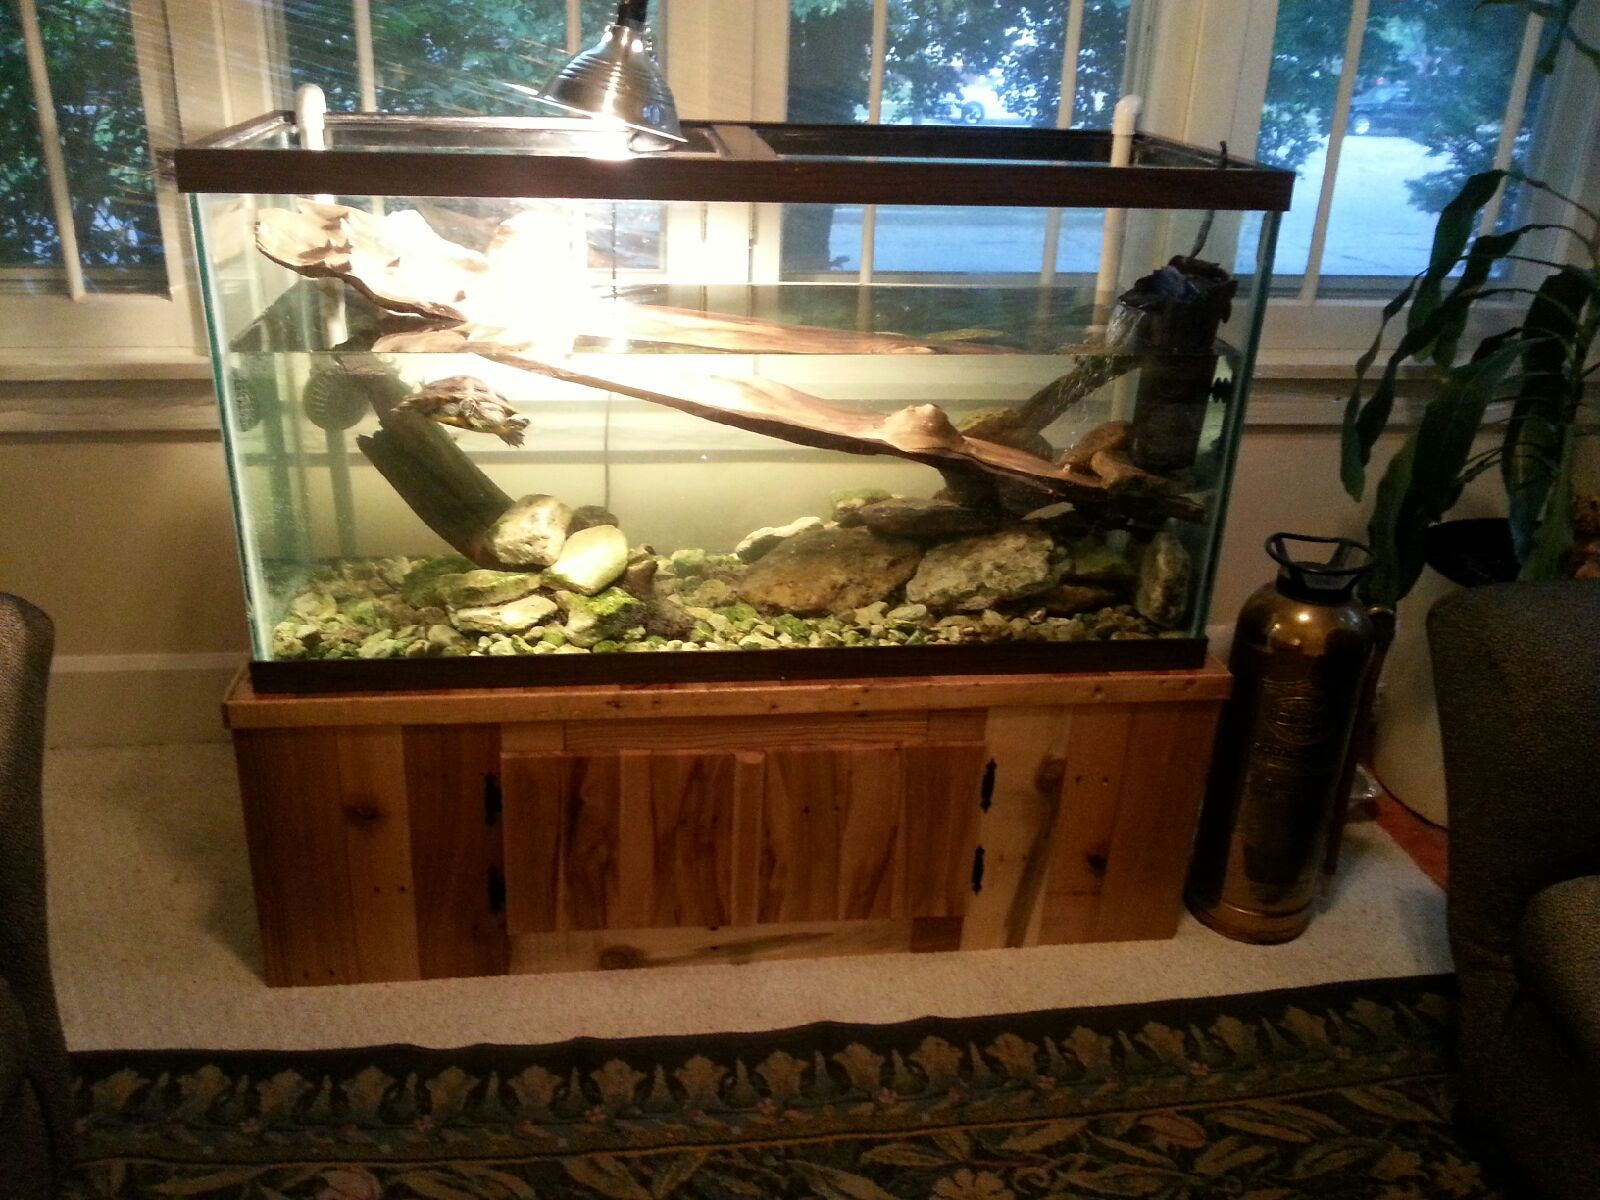 Aquarium stand Made with reclaimed pallet wood